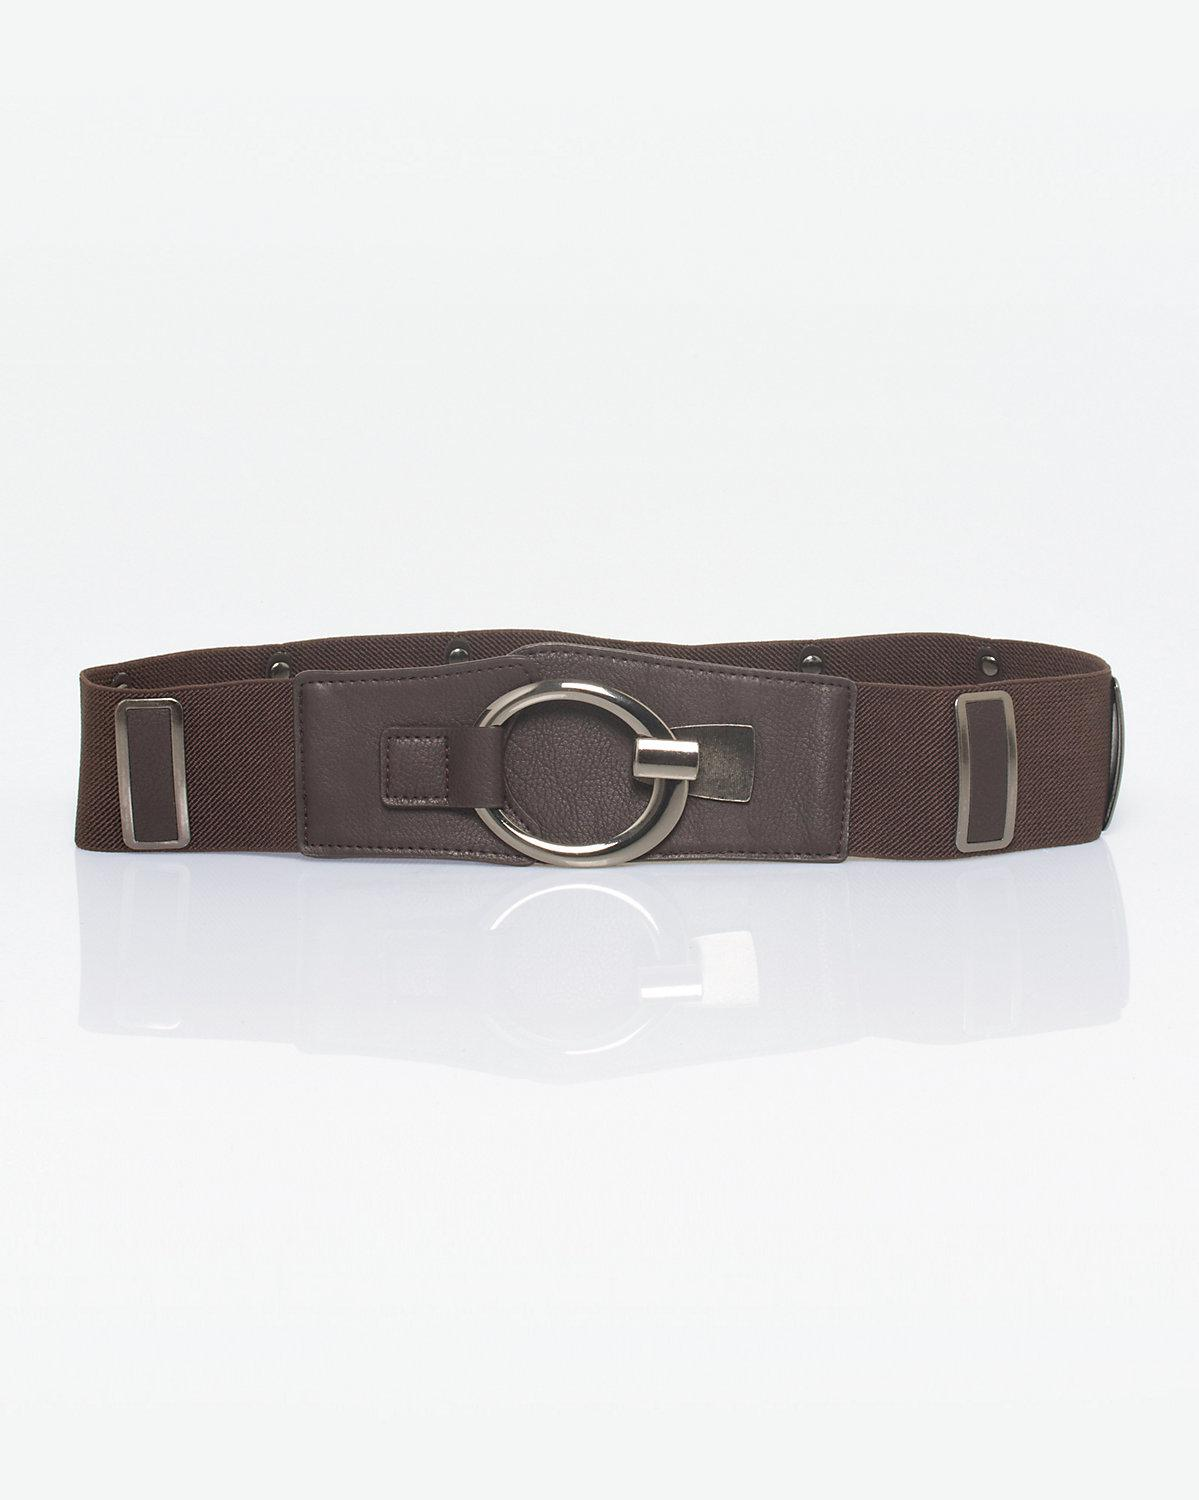 7534fd8f3 Lyst - Le Chateau Elastic   Metal Belt in Brown